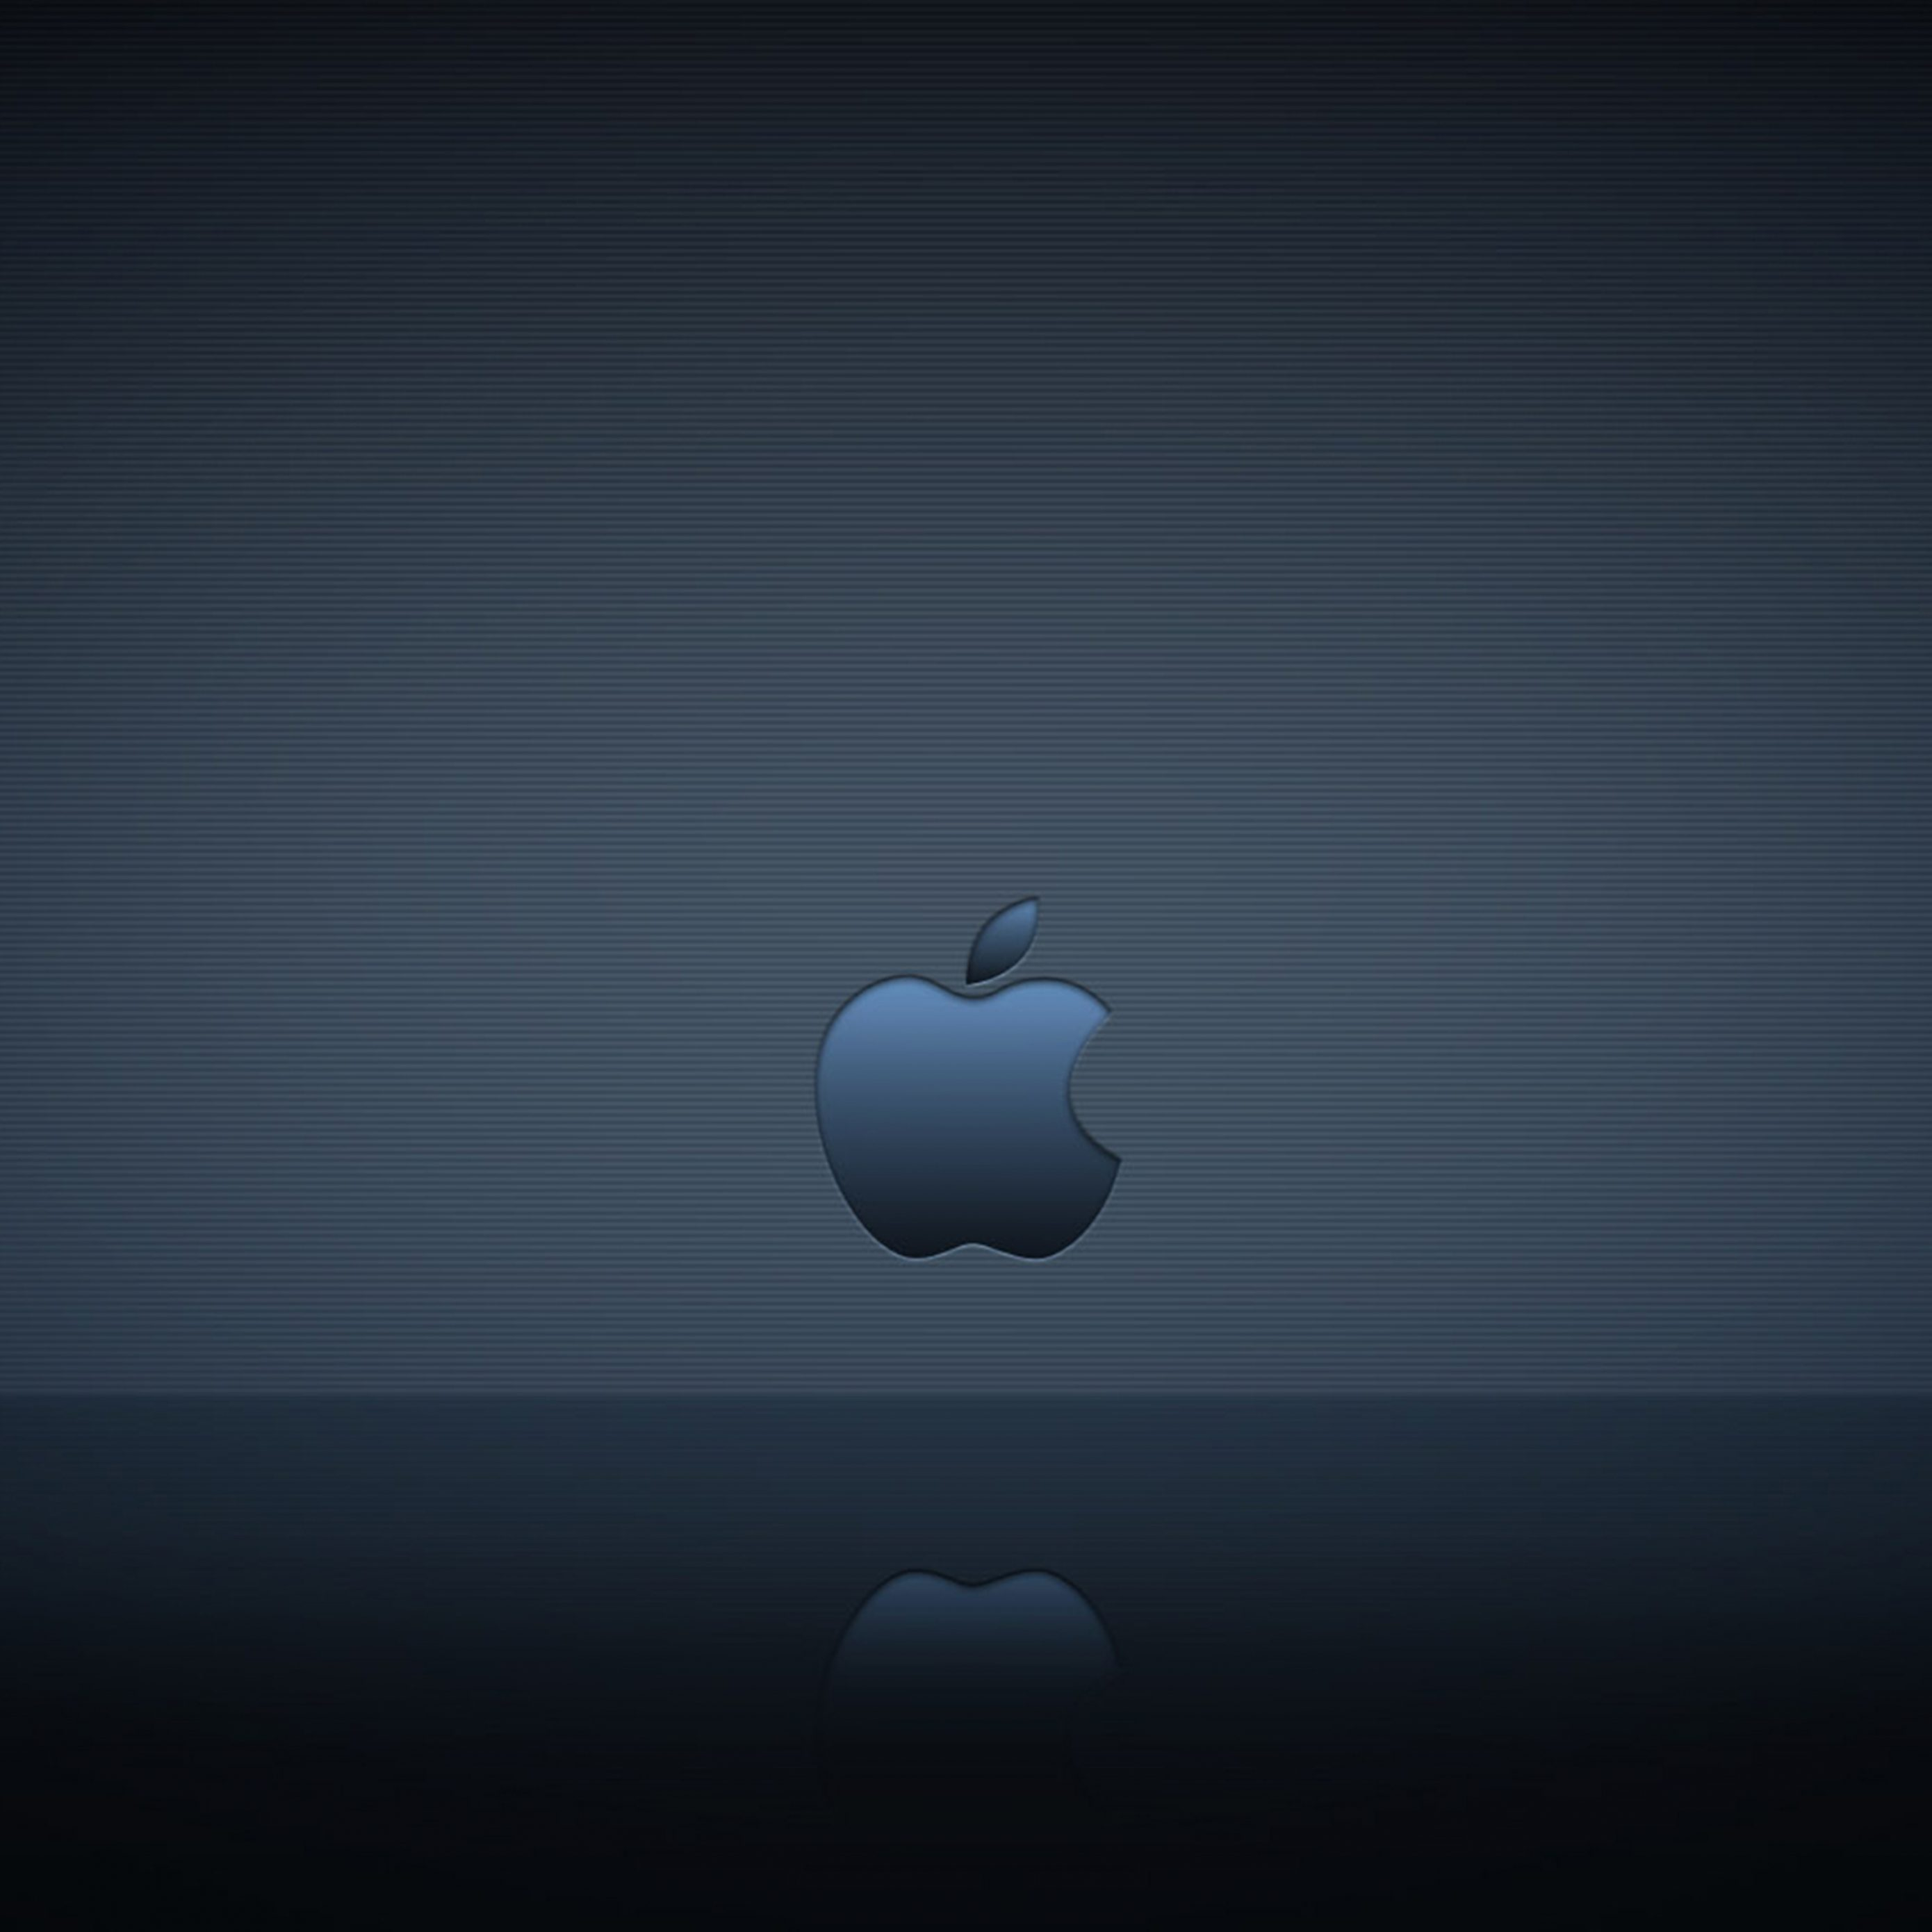 2780x2780 Parallax wallpaper 4k Apple Logo Reflection Ipad Wallpaper 2780x2780 pixels resolution